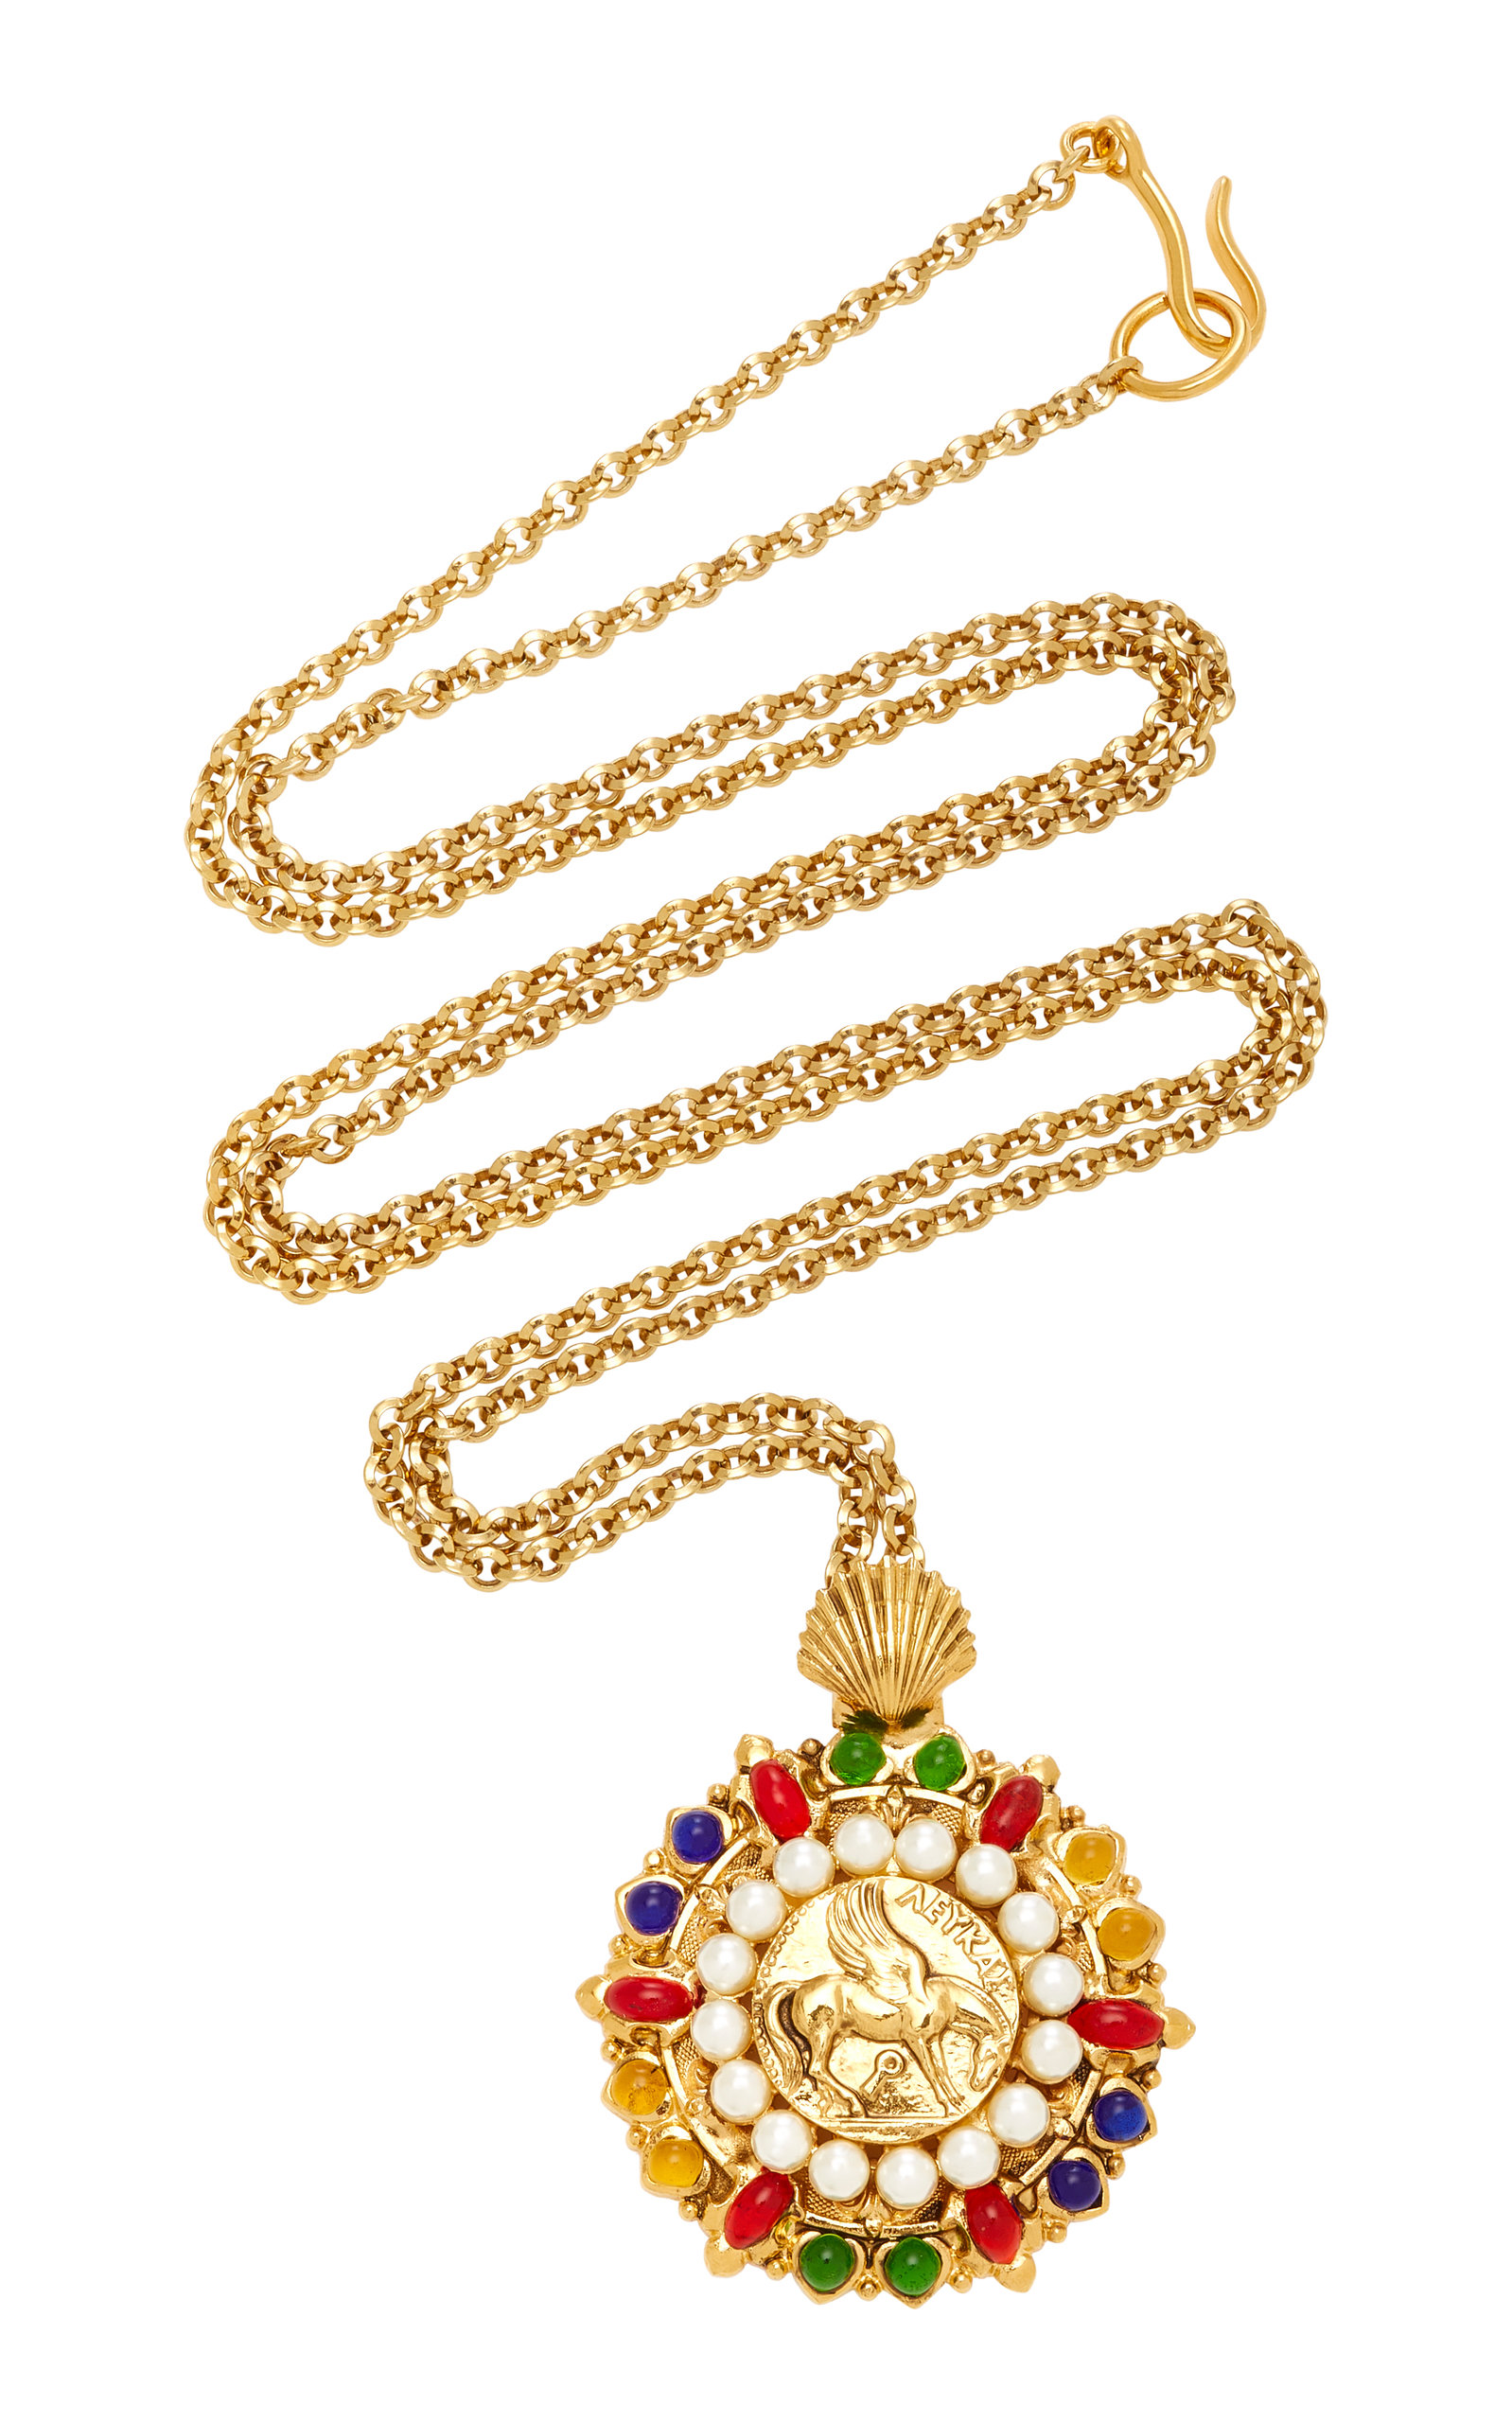 pendant necklace gold flower jewelry hong kong pin